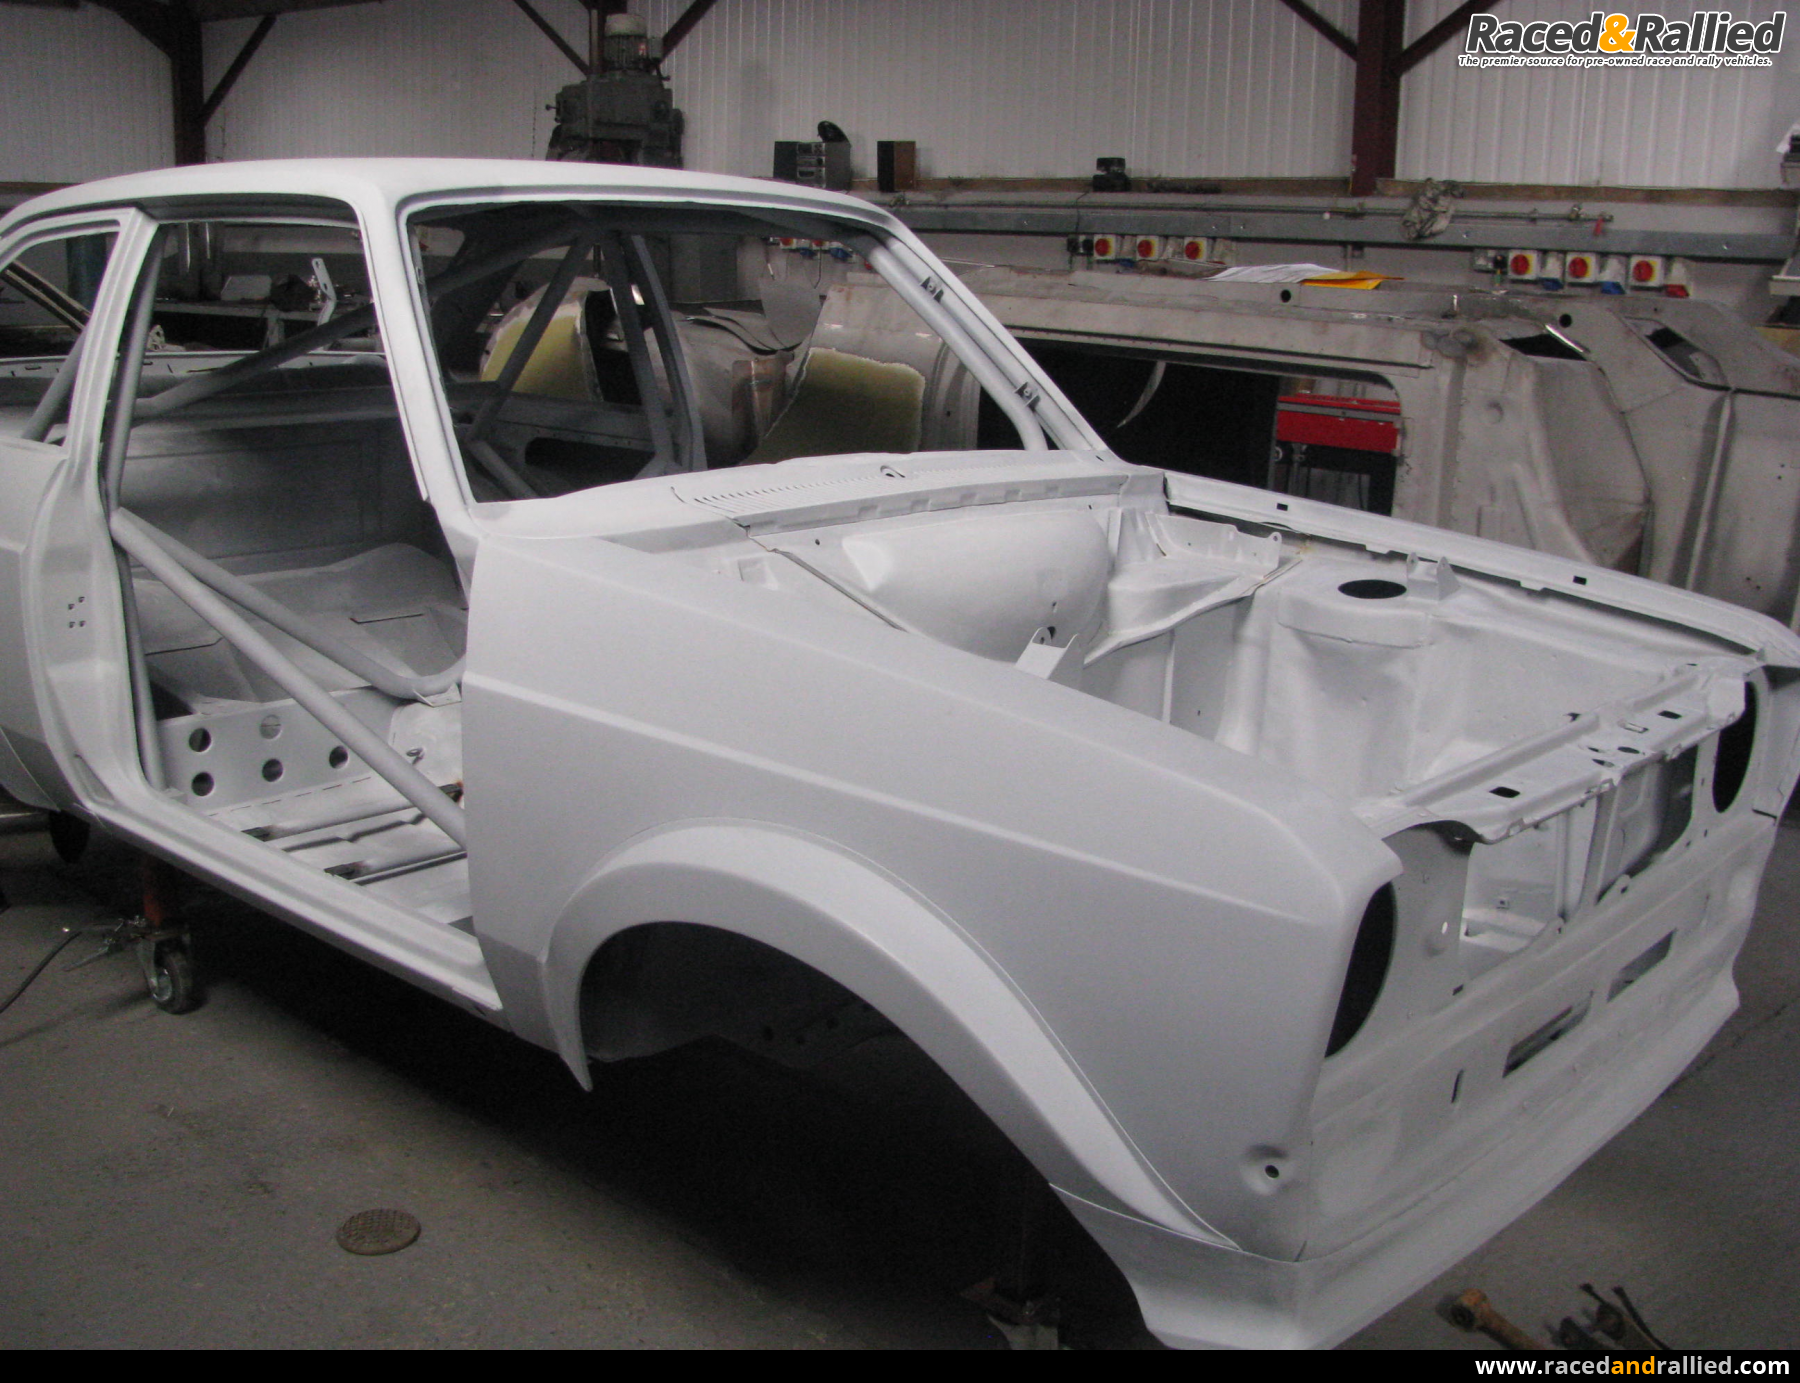 Ford Escort Mk2 Group 4 Rally Cars For Sale At Raced